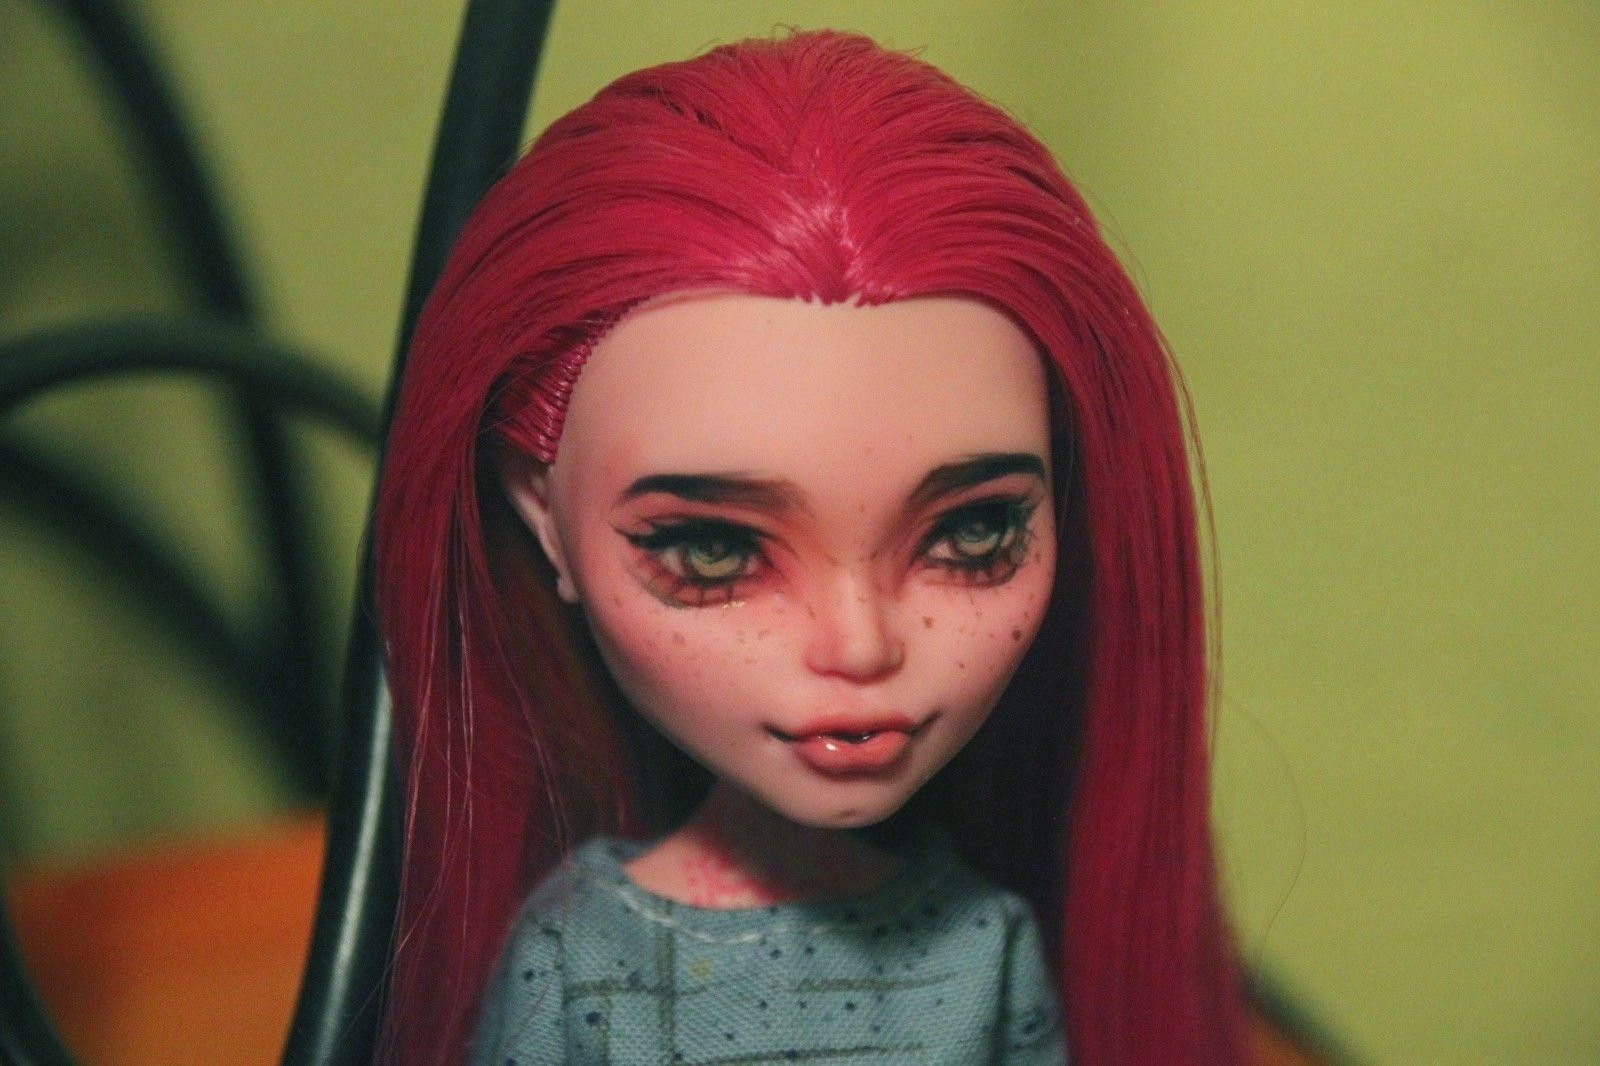 Ooak Monster High Doll Gigi Grant Repainted By Darya Space Her